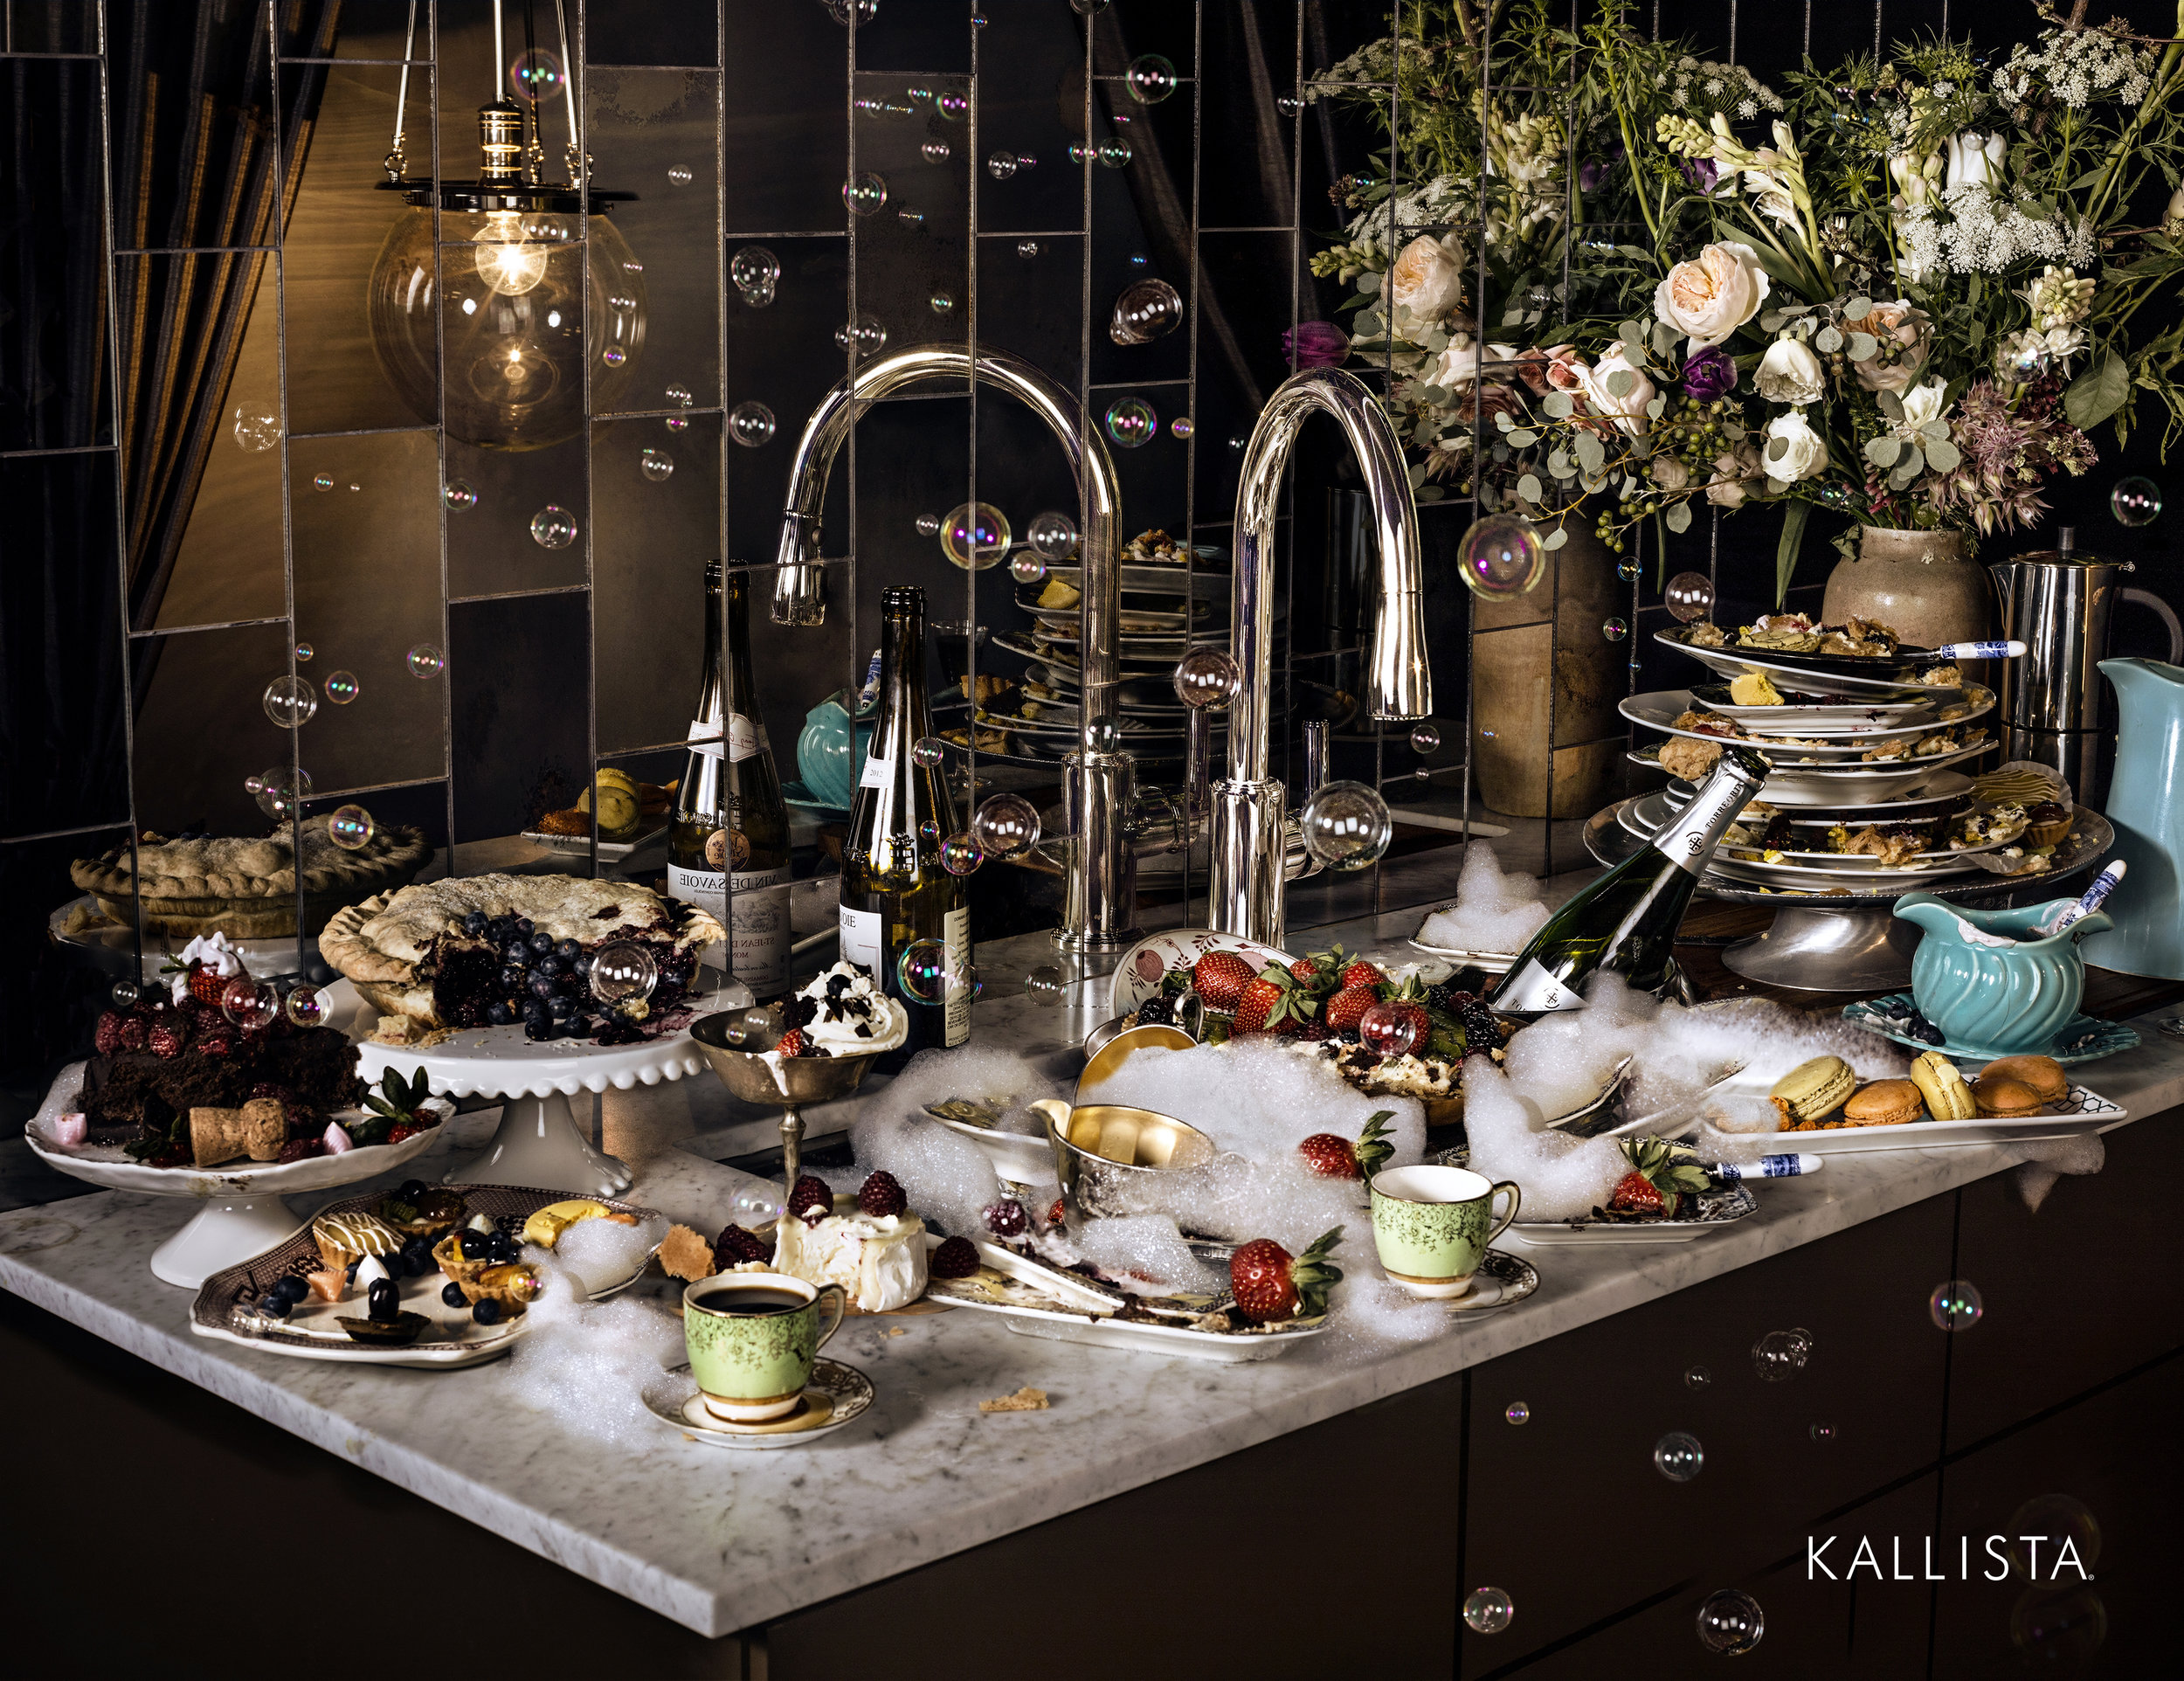 Kallista_KitchenSet_AfterParty.jpg